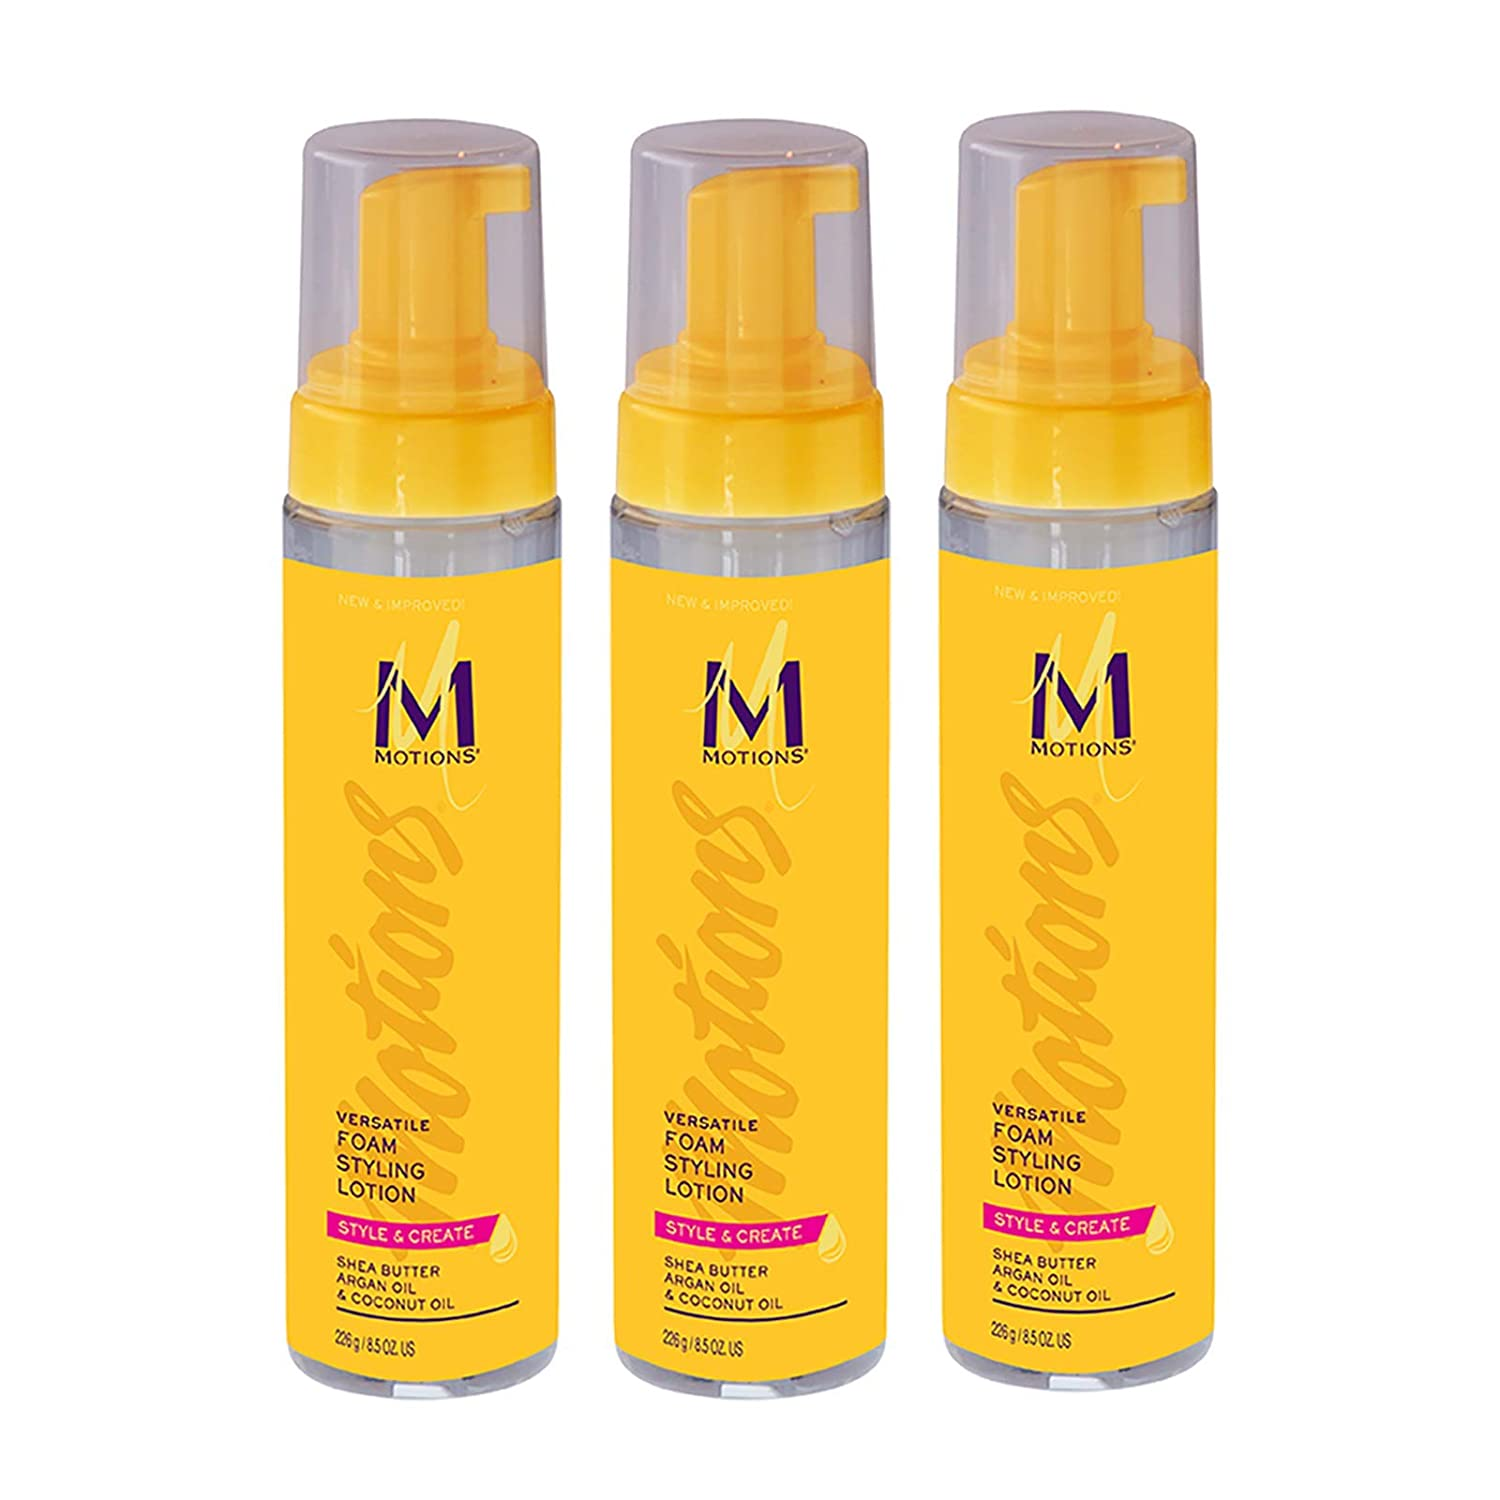 Motions Style and Create Versatile Foam Styling Lotion